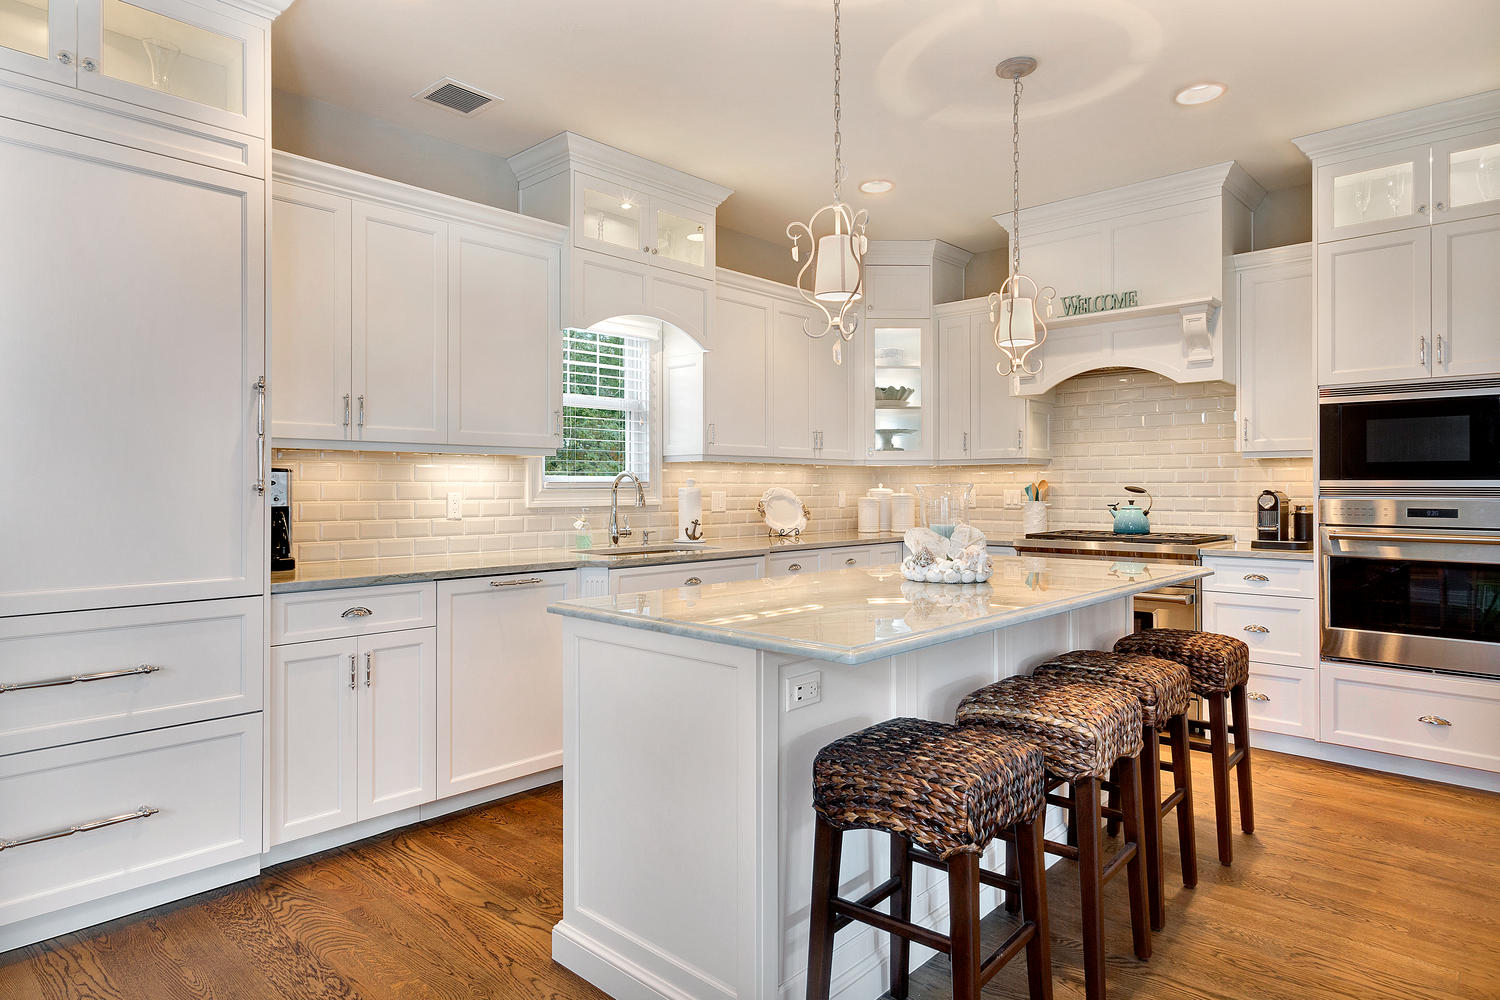 Refined Casual Style Kitchen Brielle New Jersey by Design Line Kitchens